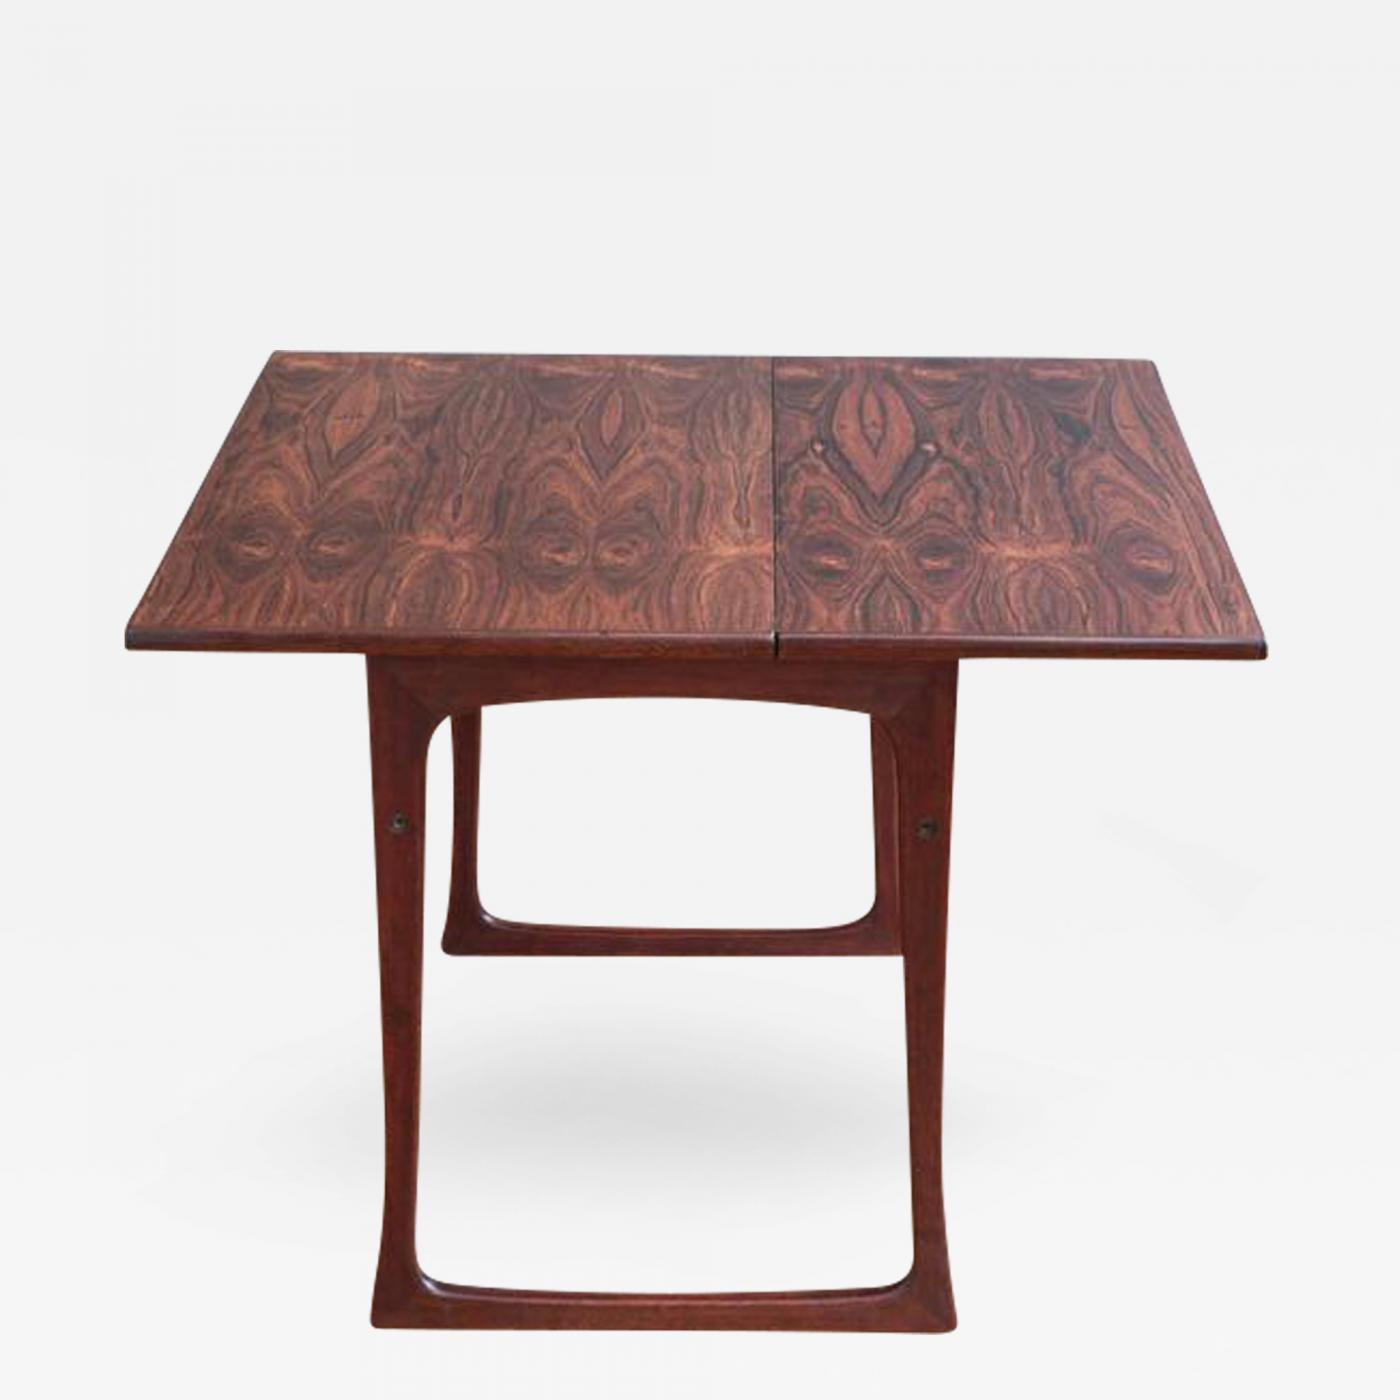 zoom occasional village fuji prodfujict coffee furniture h w fujict table tables